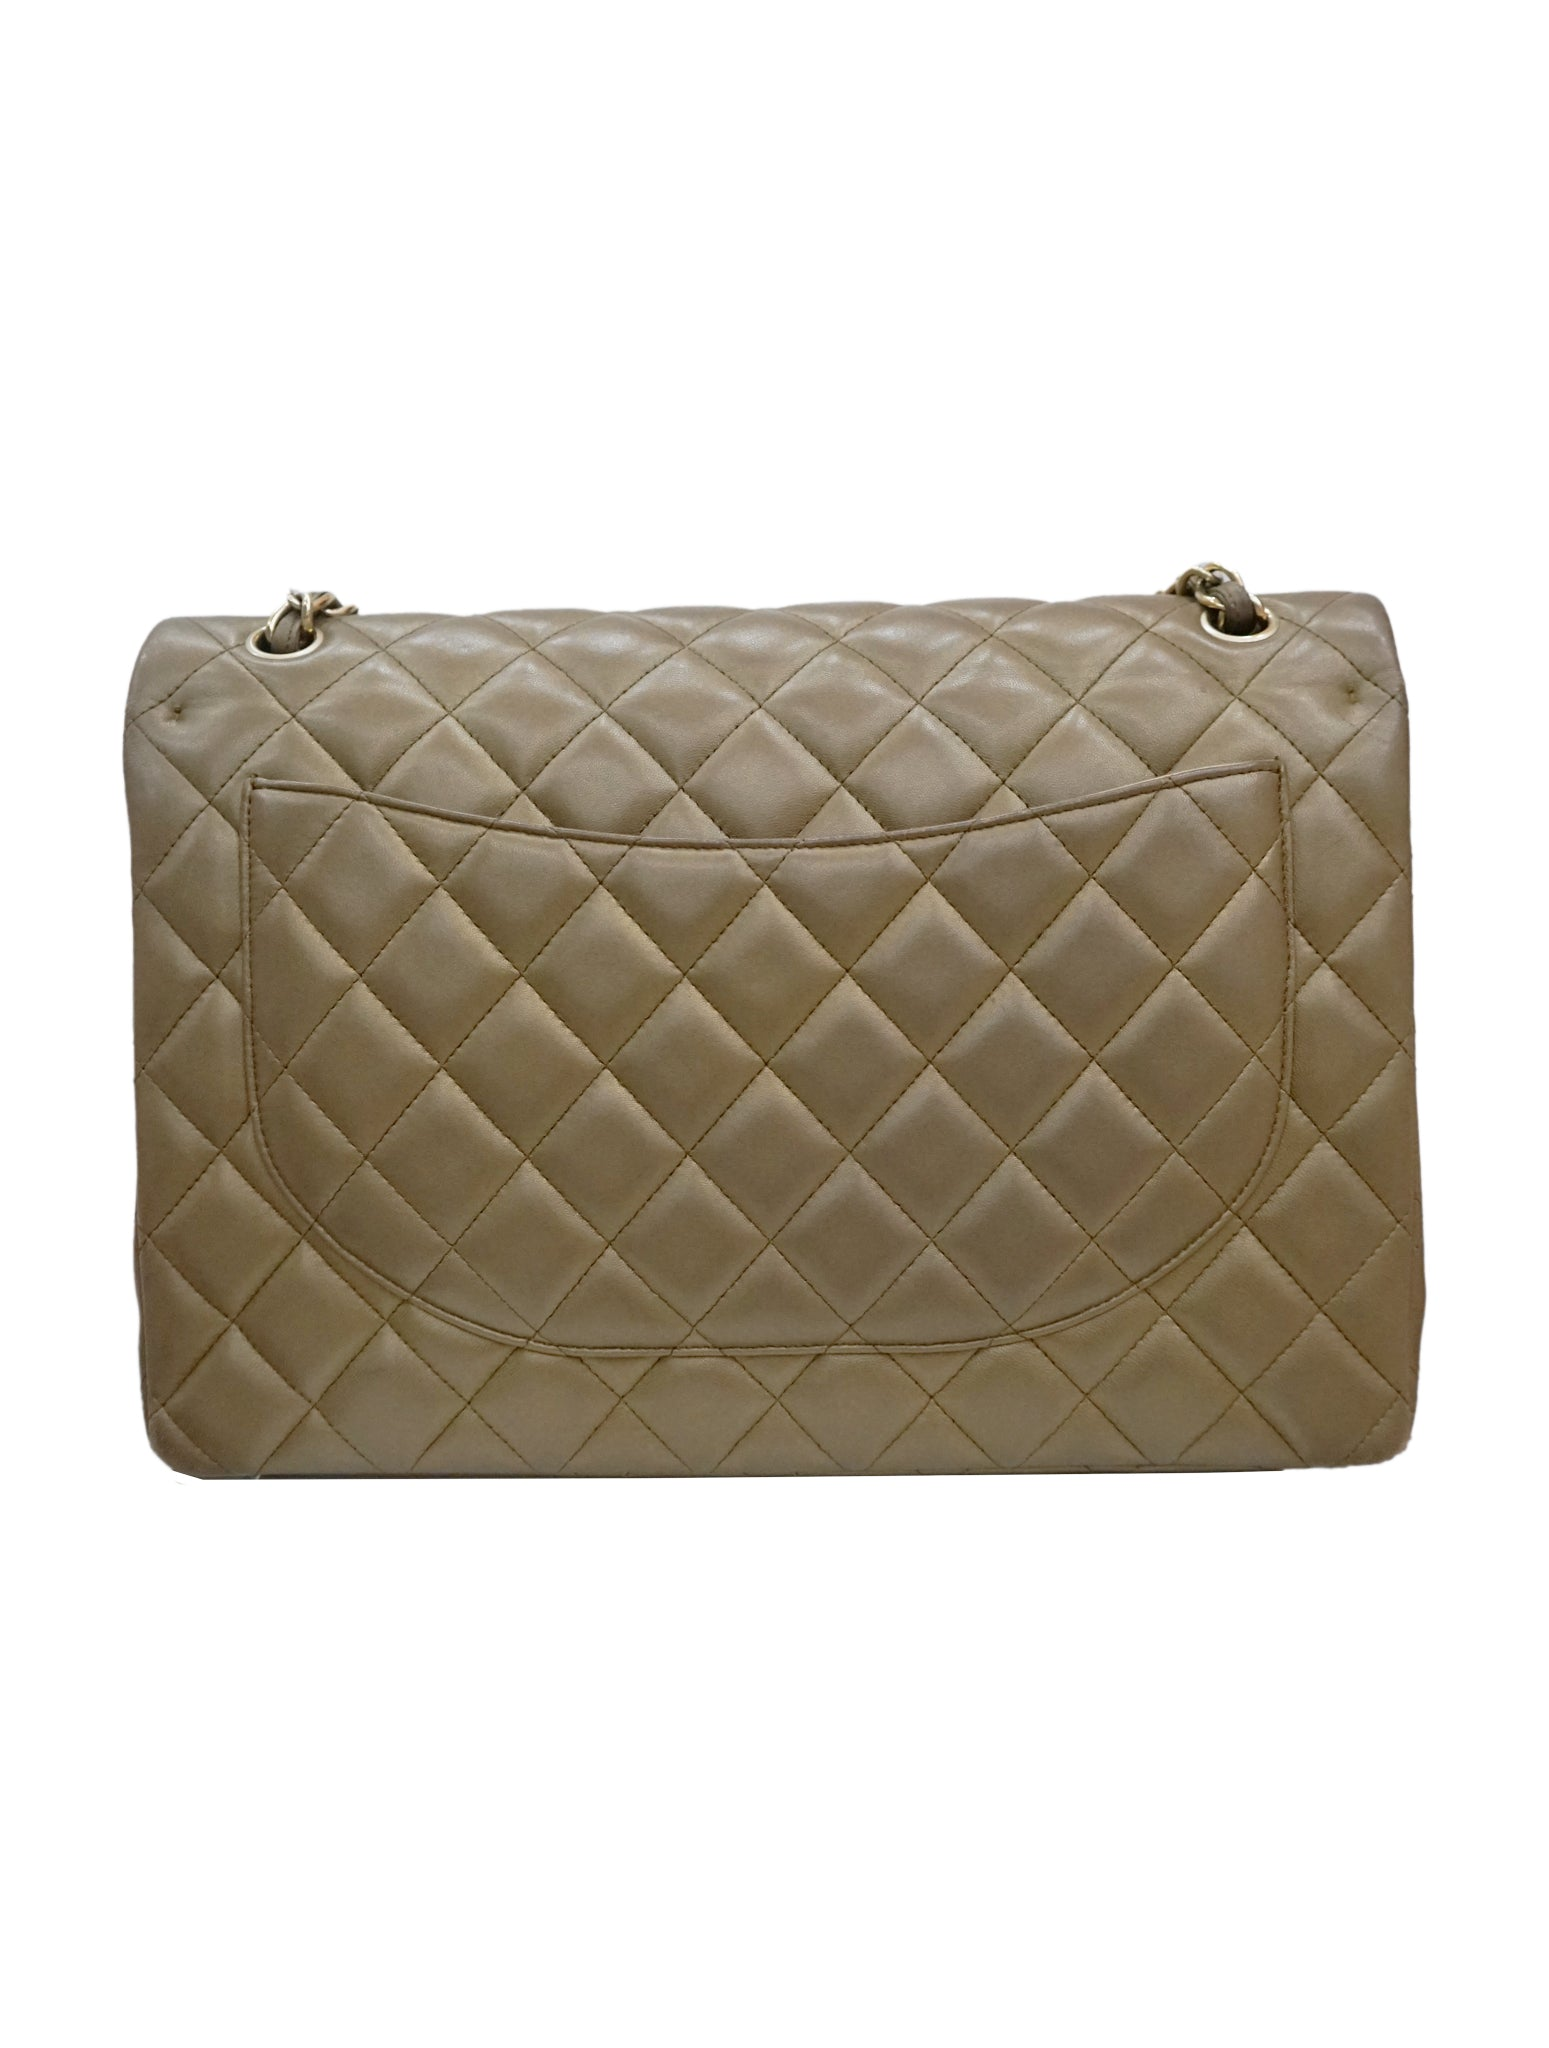 QUILTED LEATHER CLASSIC MAXI DOUBLE FLAP BAG